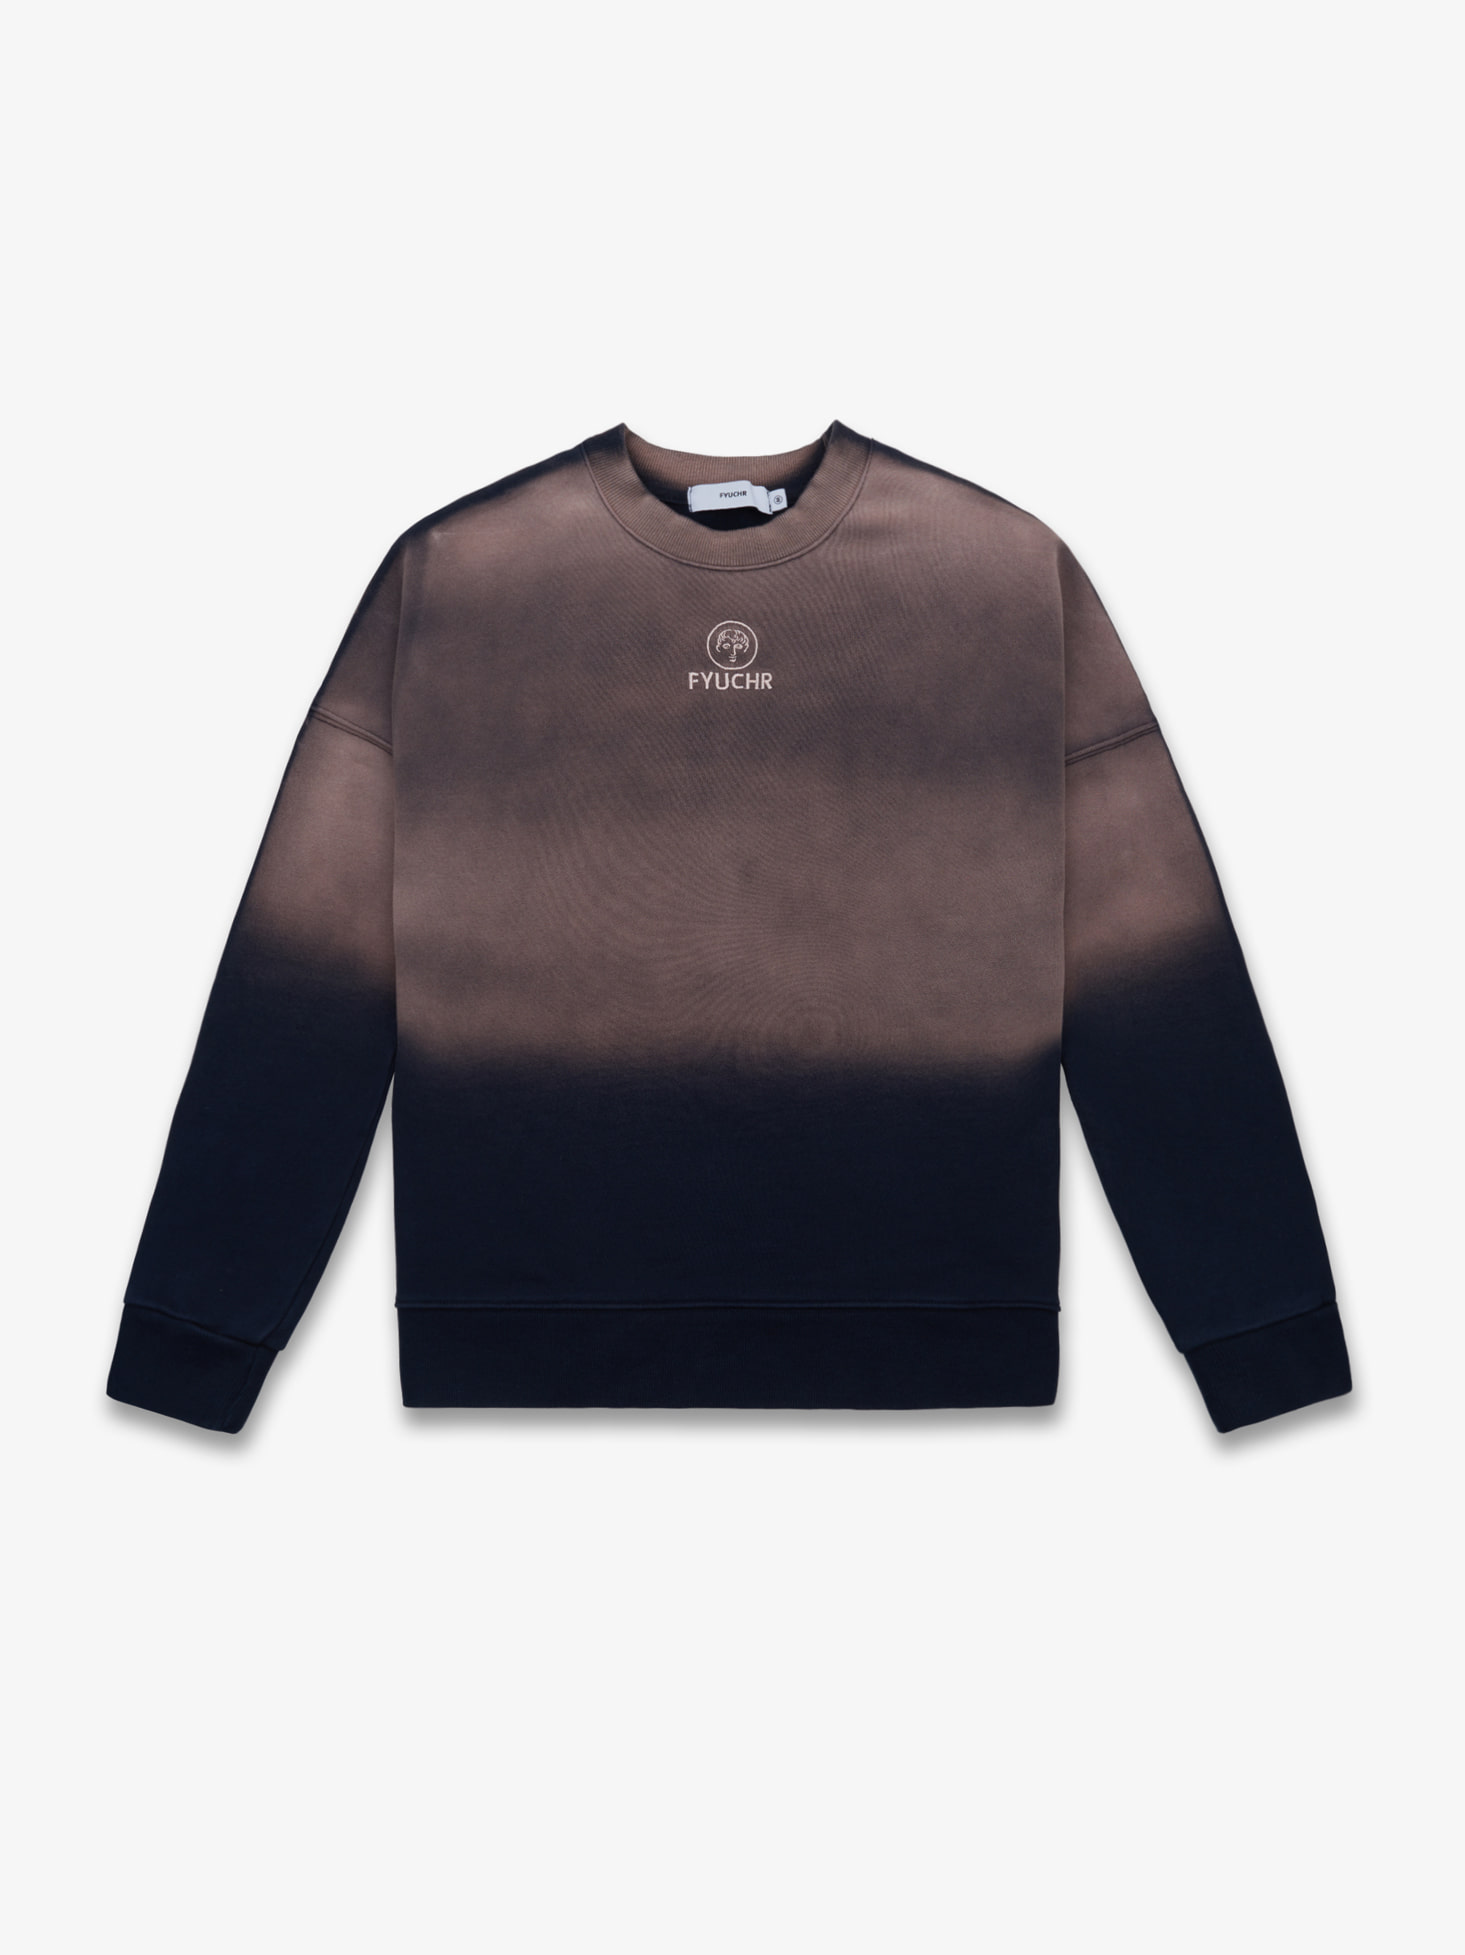 COLOR GRADIENT CREWNECK SHIRTS (NAVY) 시즌오프 50% 특별할인 81,000원 ->